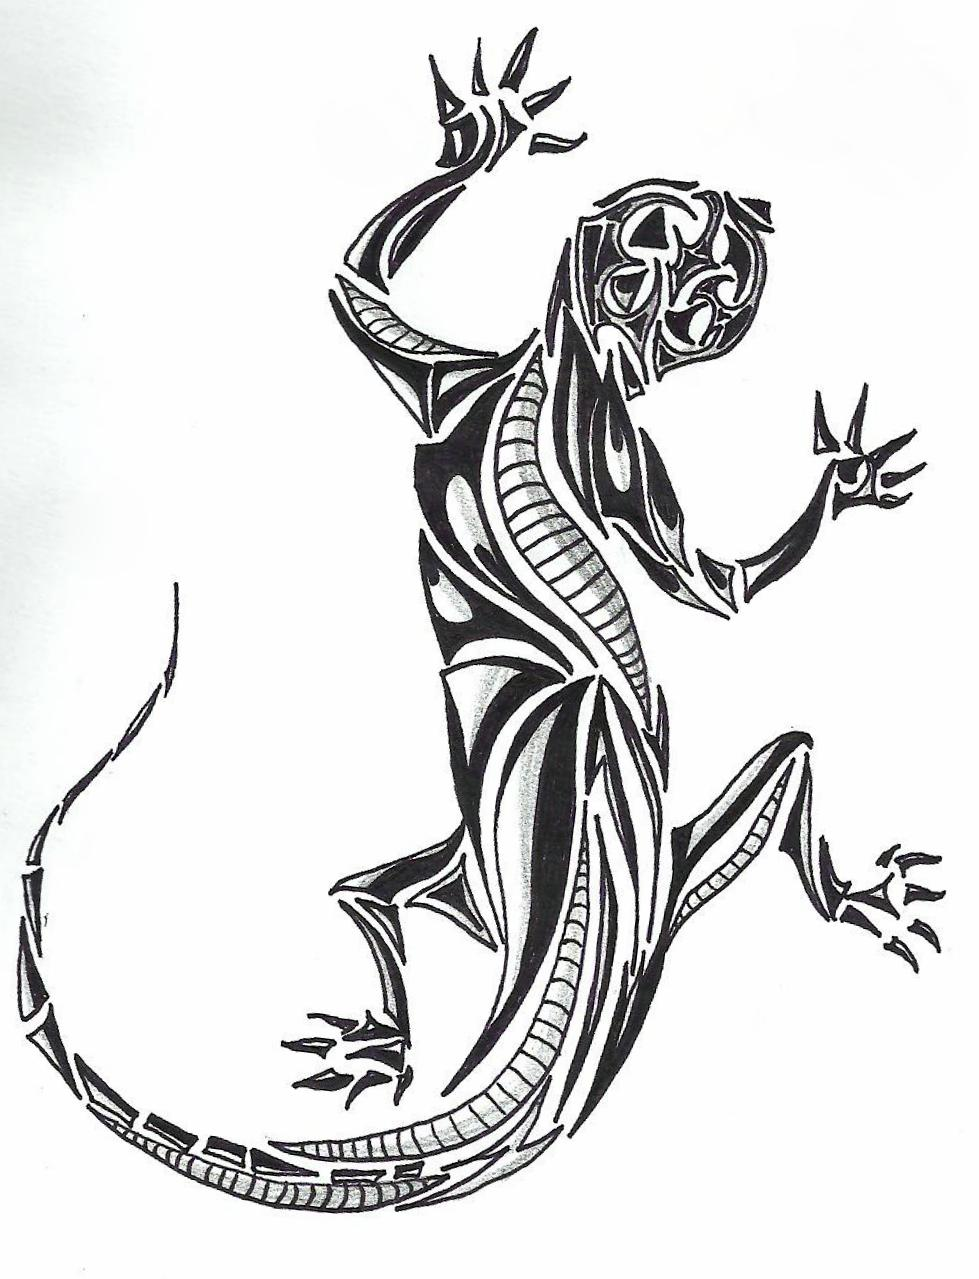 Drawn reptile tribal SketchDaily Lizard style 30th January